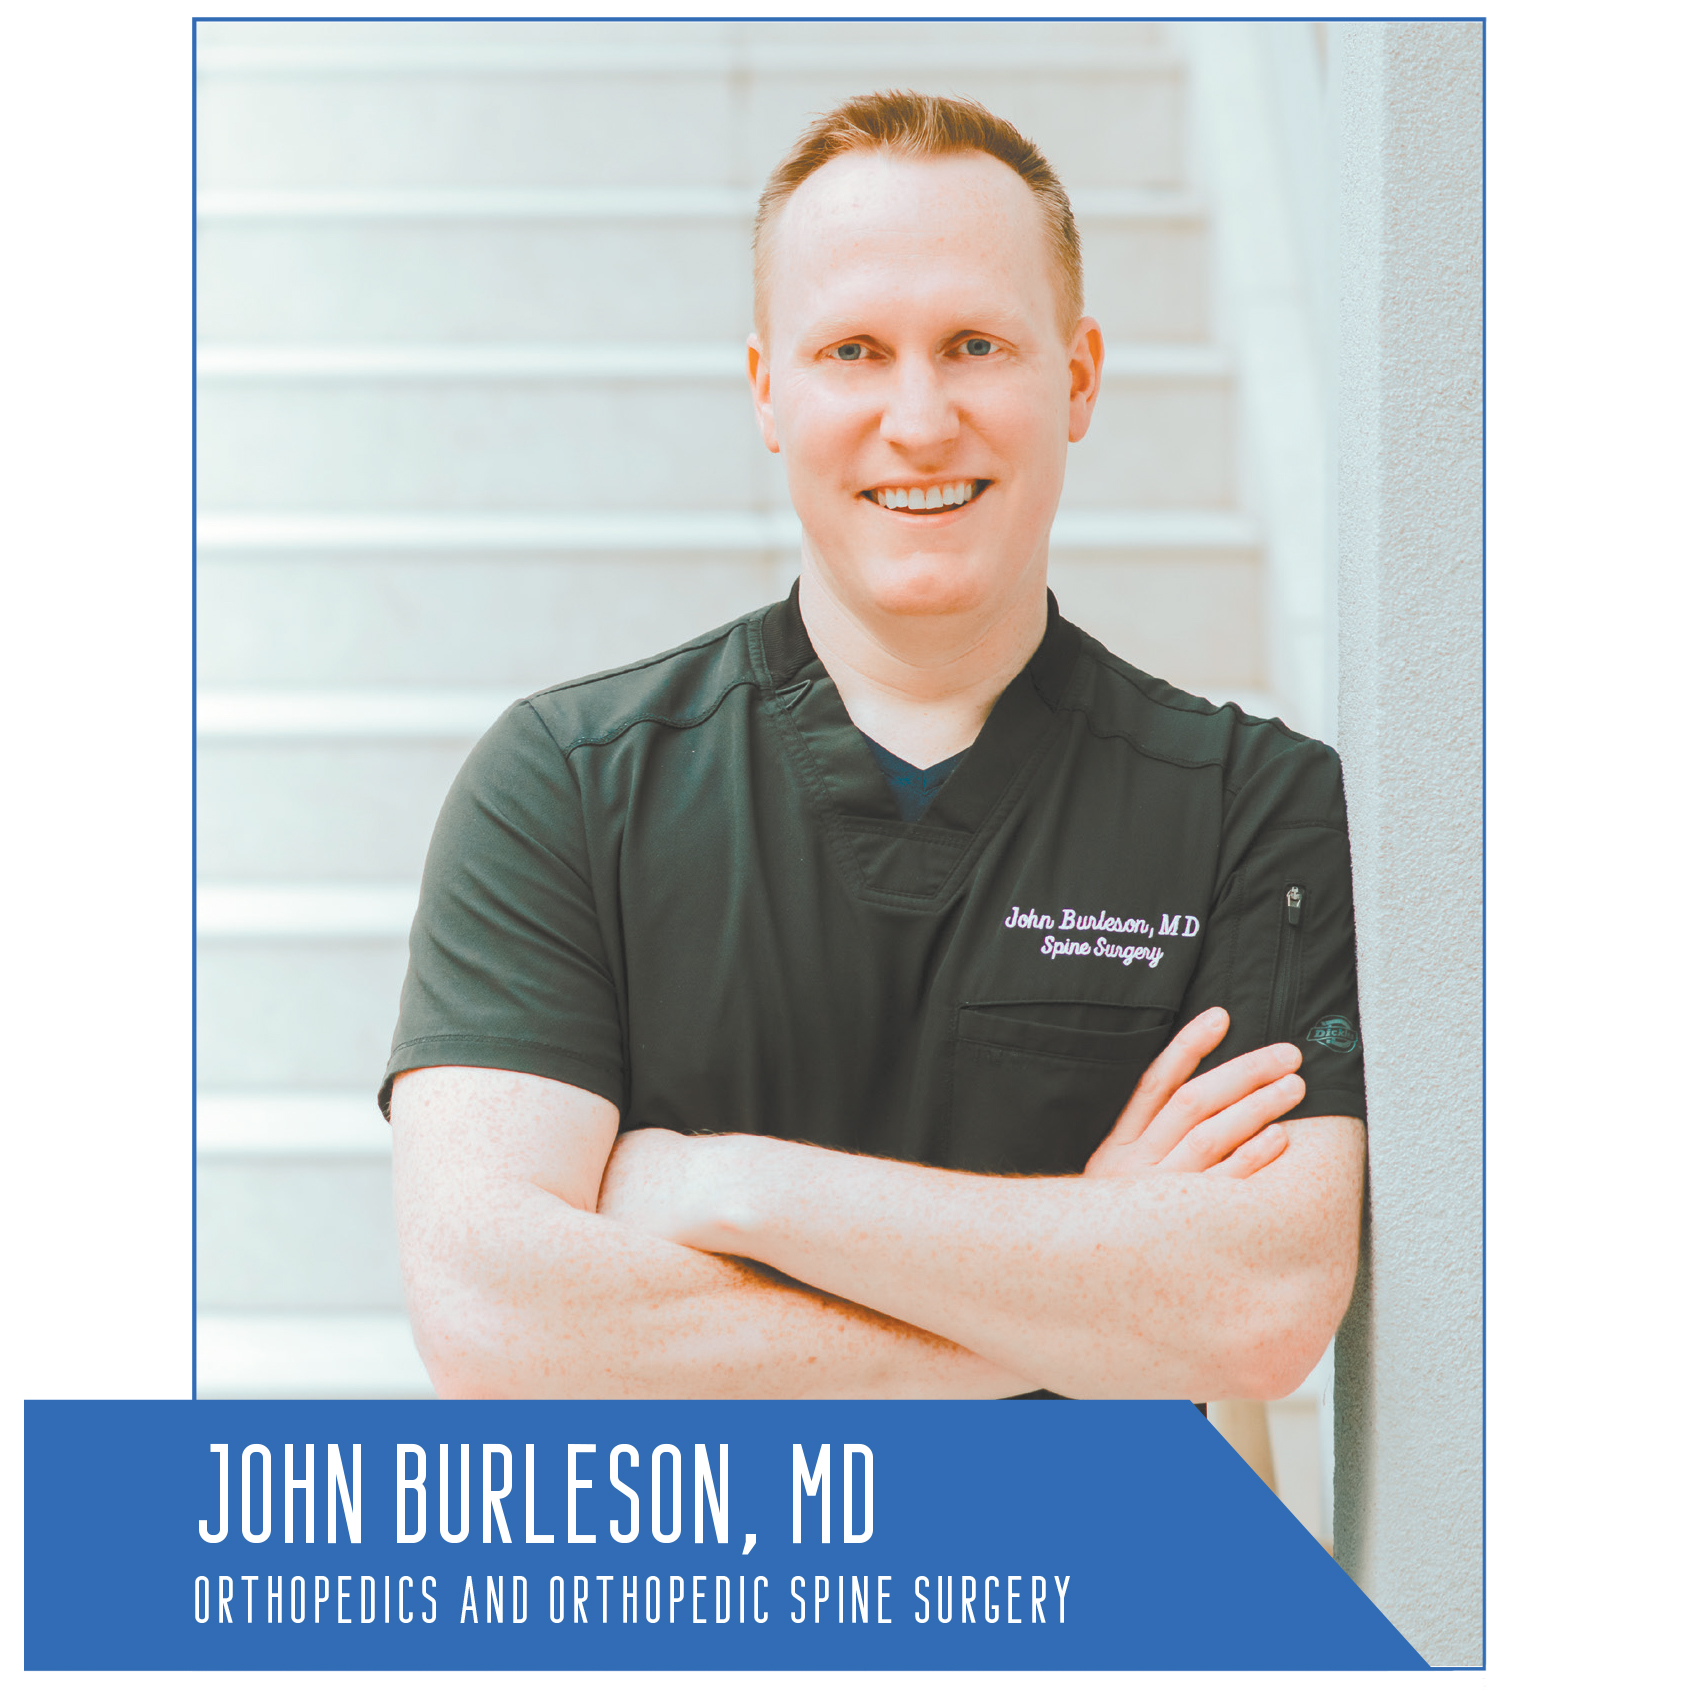 Medical Professionals Magazine features John Burleson, MD